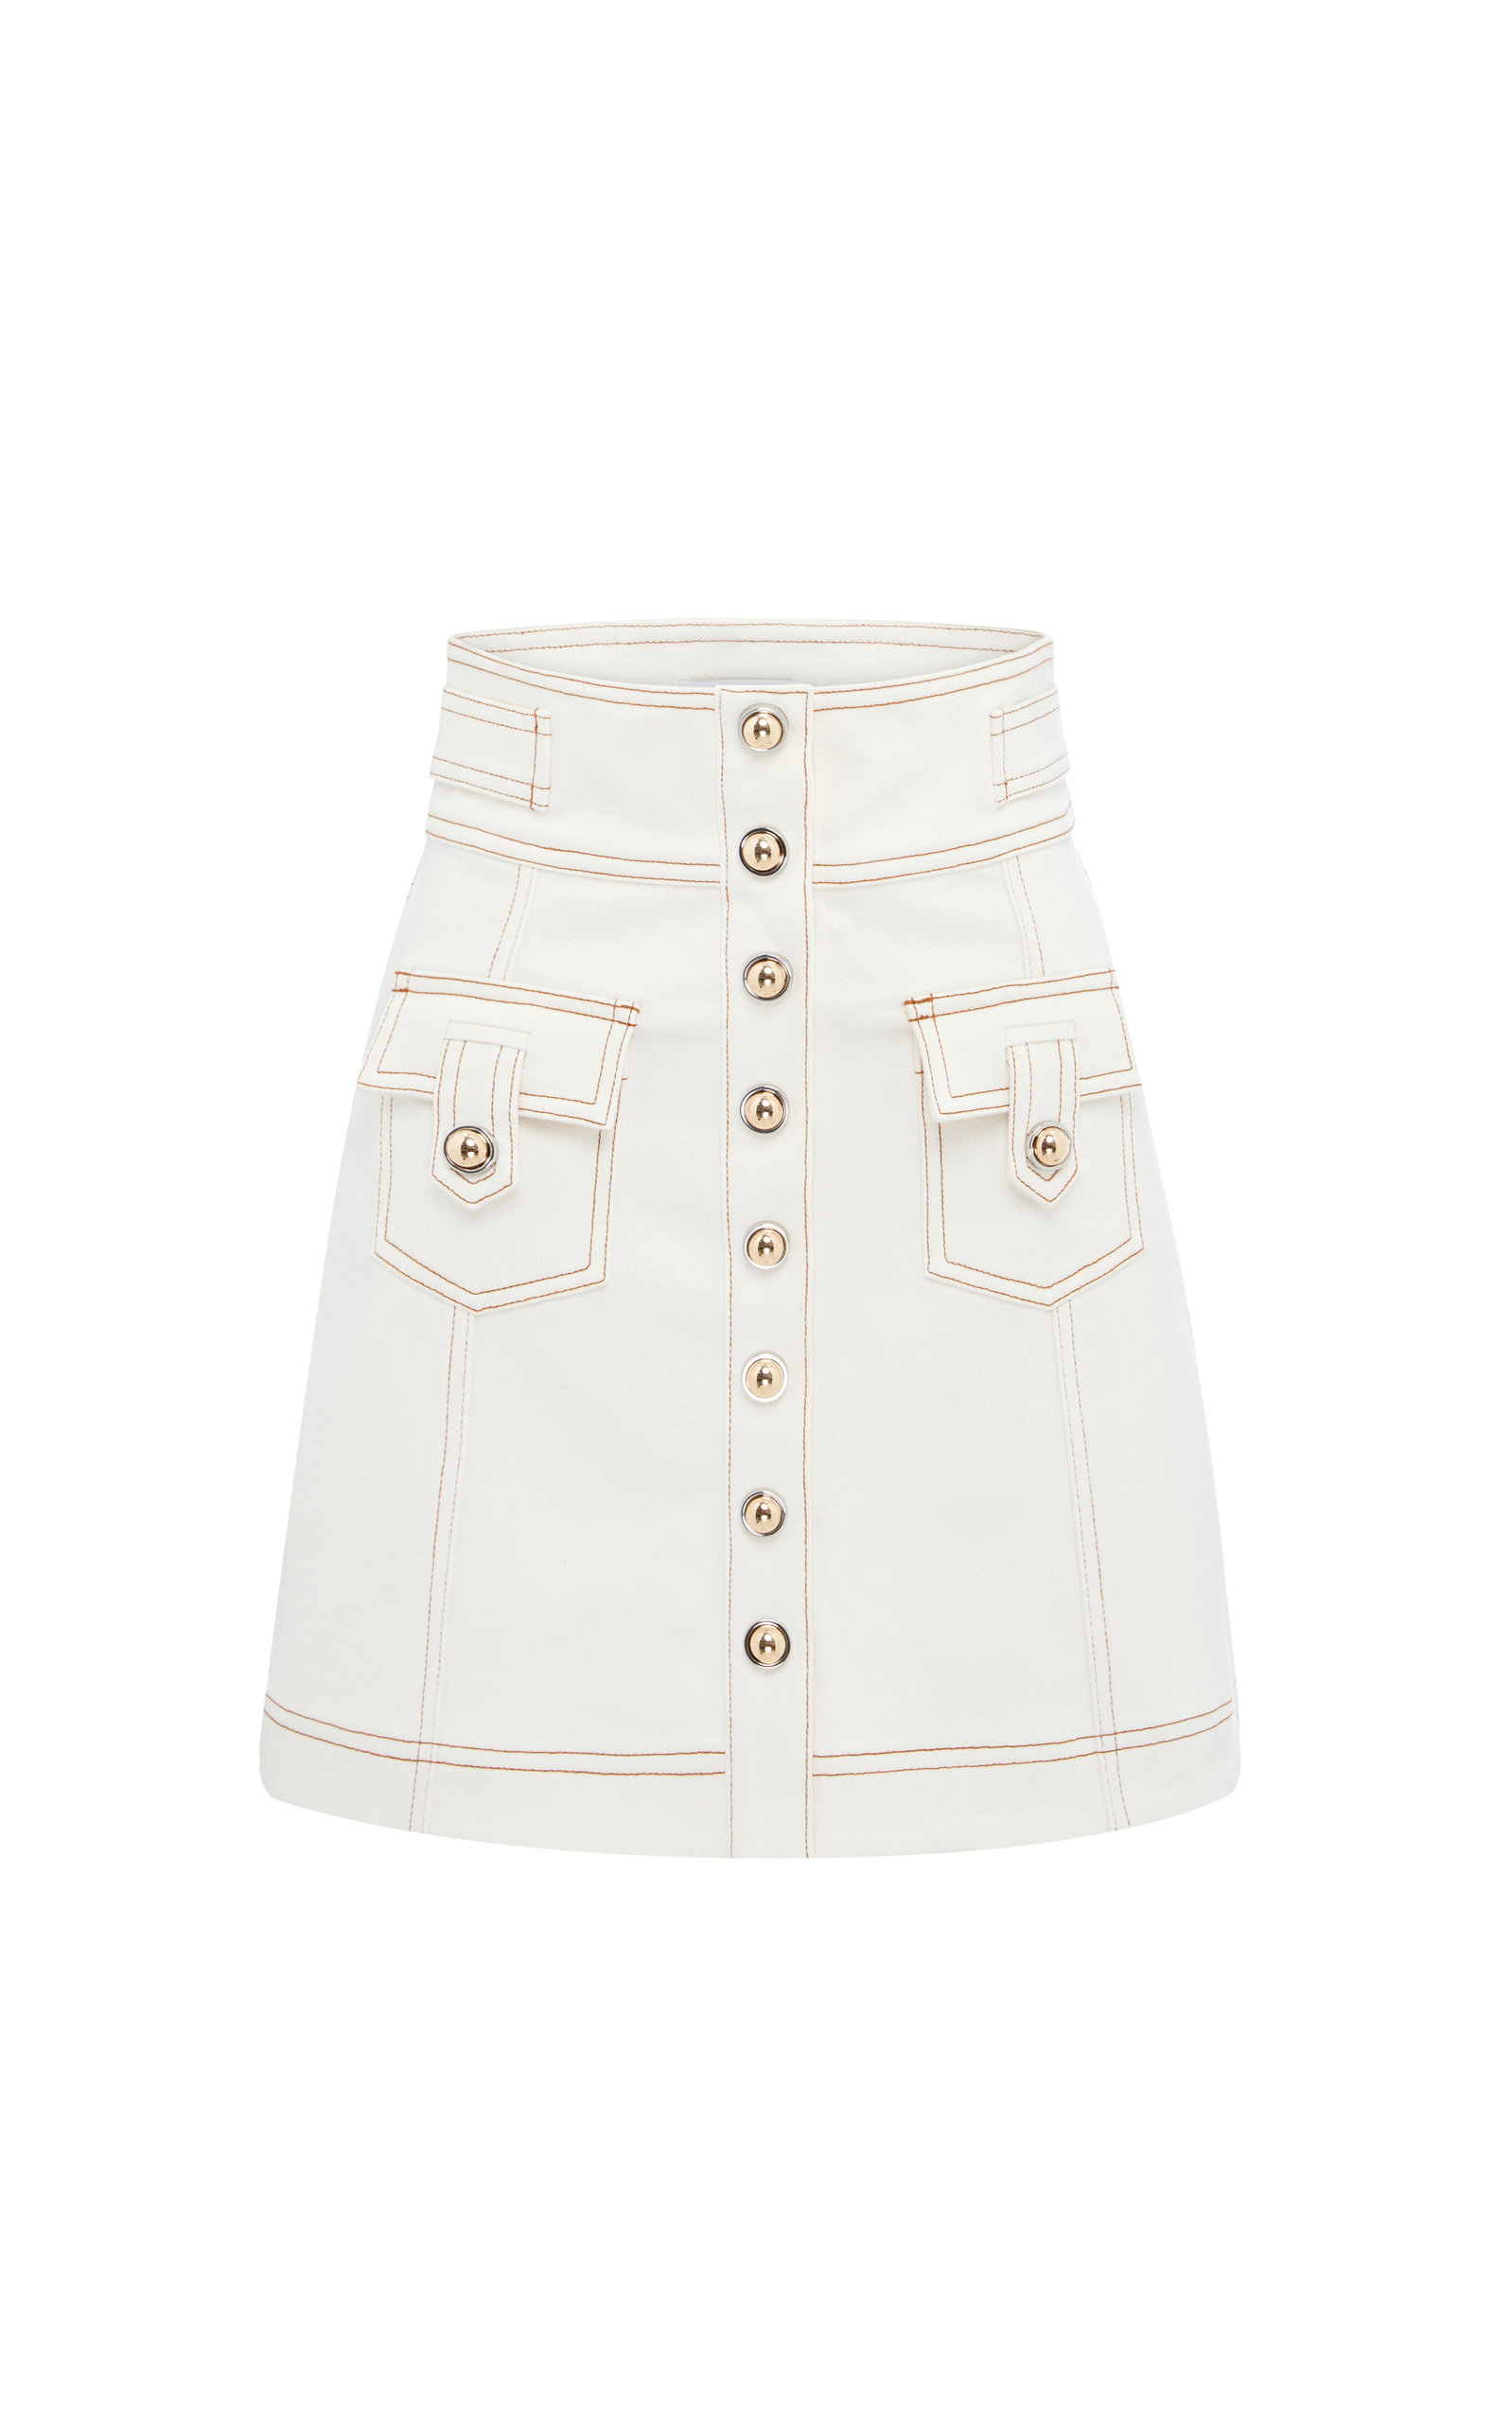 Alice Mccall   Alice McCall Midnight Muse Mini Skirt   Clouty